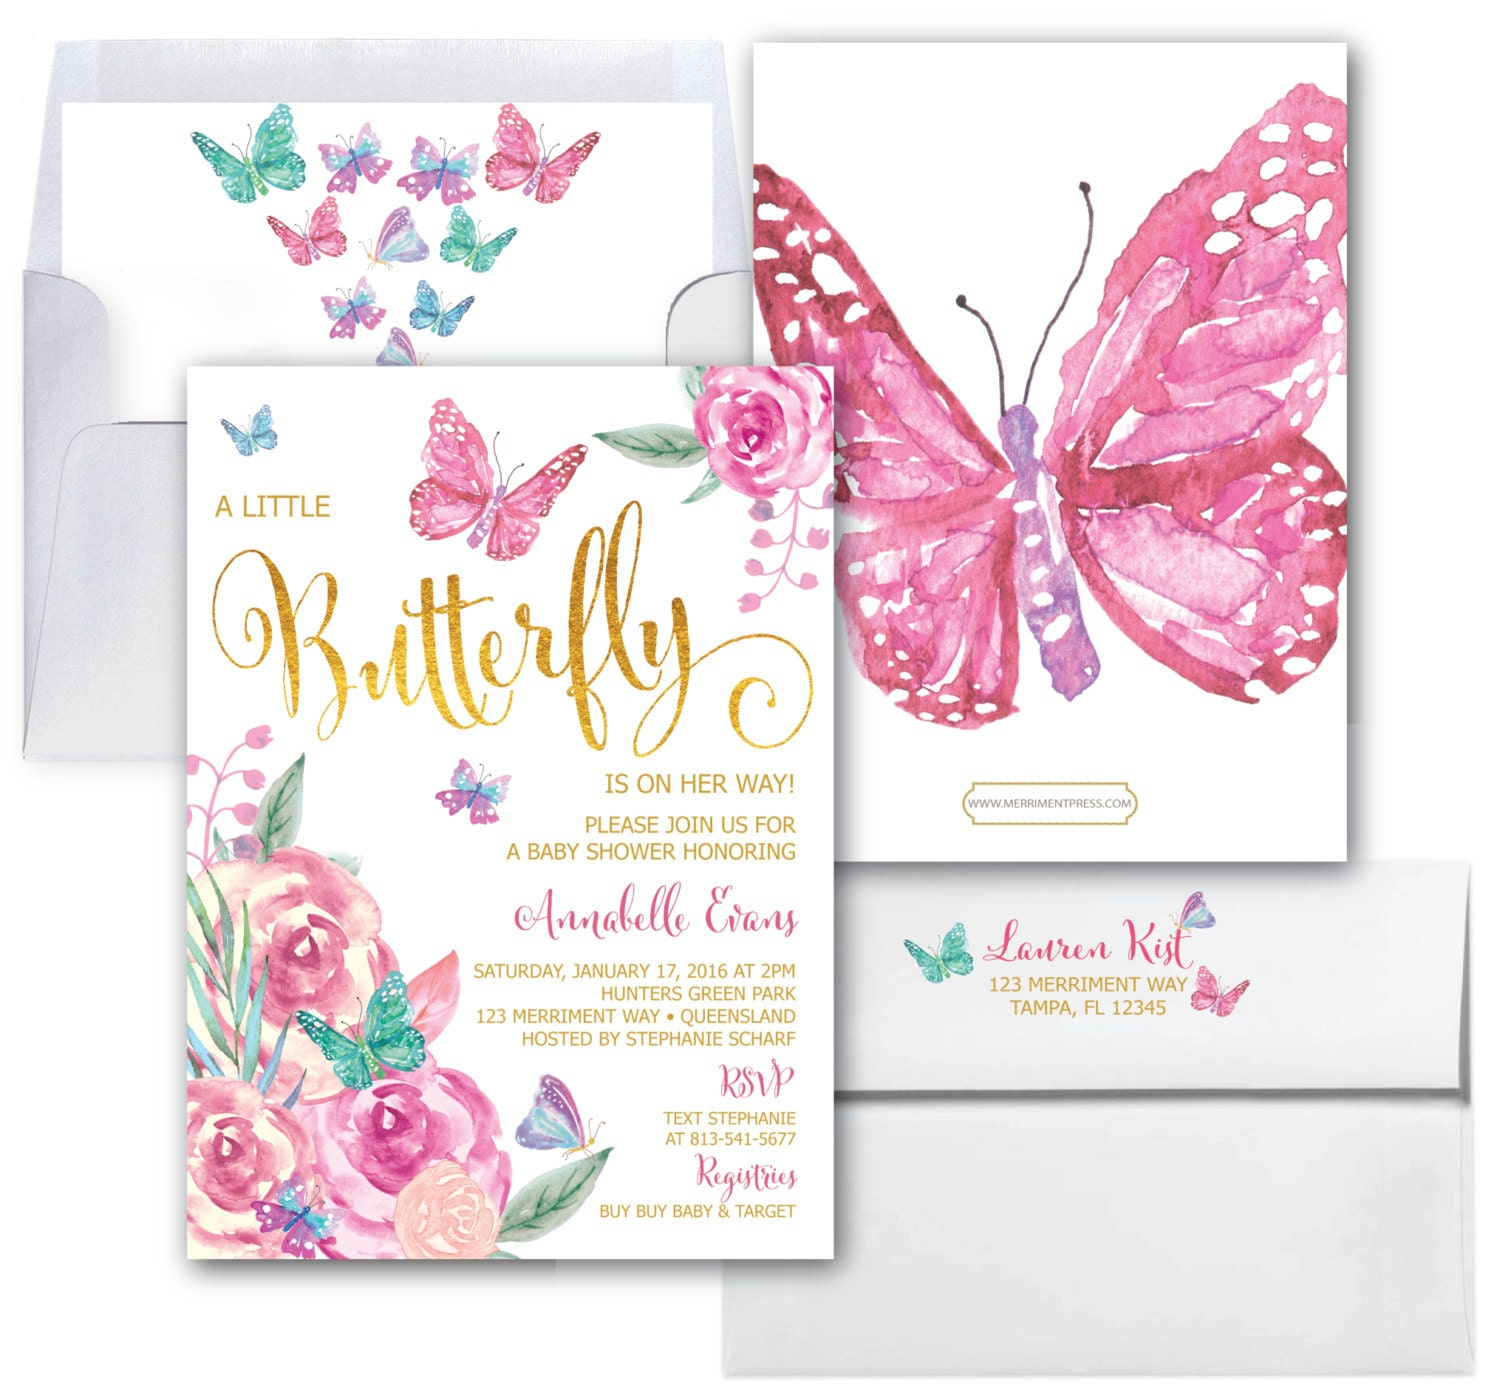 Butterfly Baby Shower Invitations // Butterflies Invitation ...